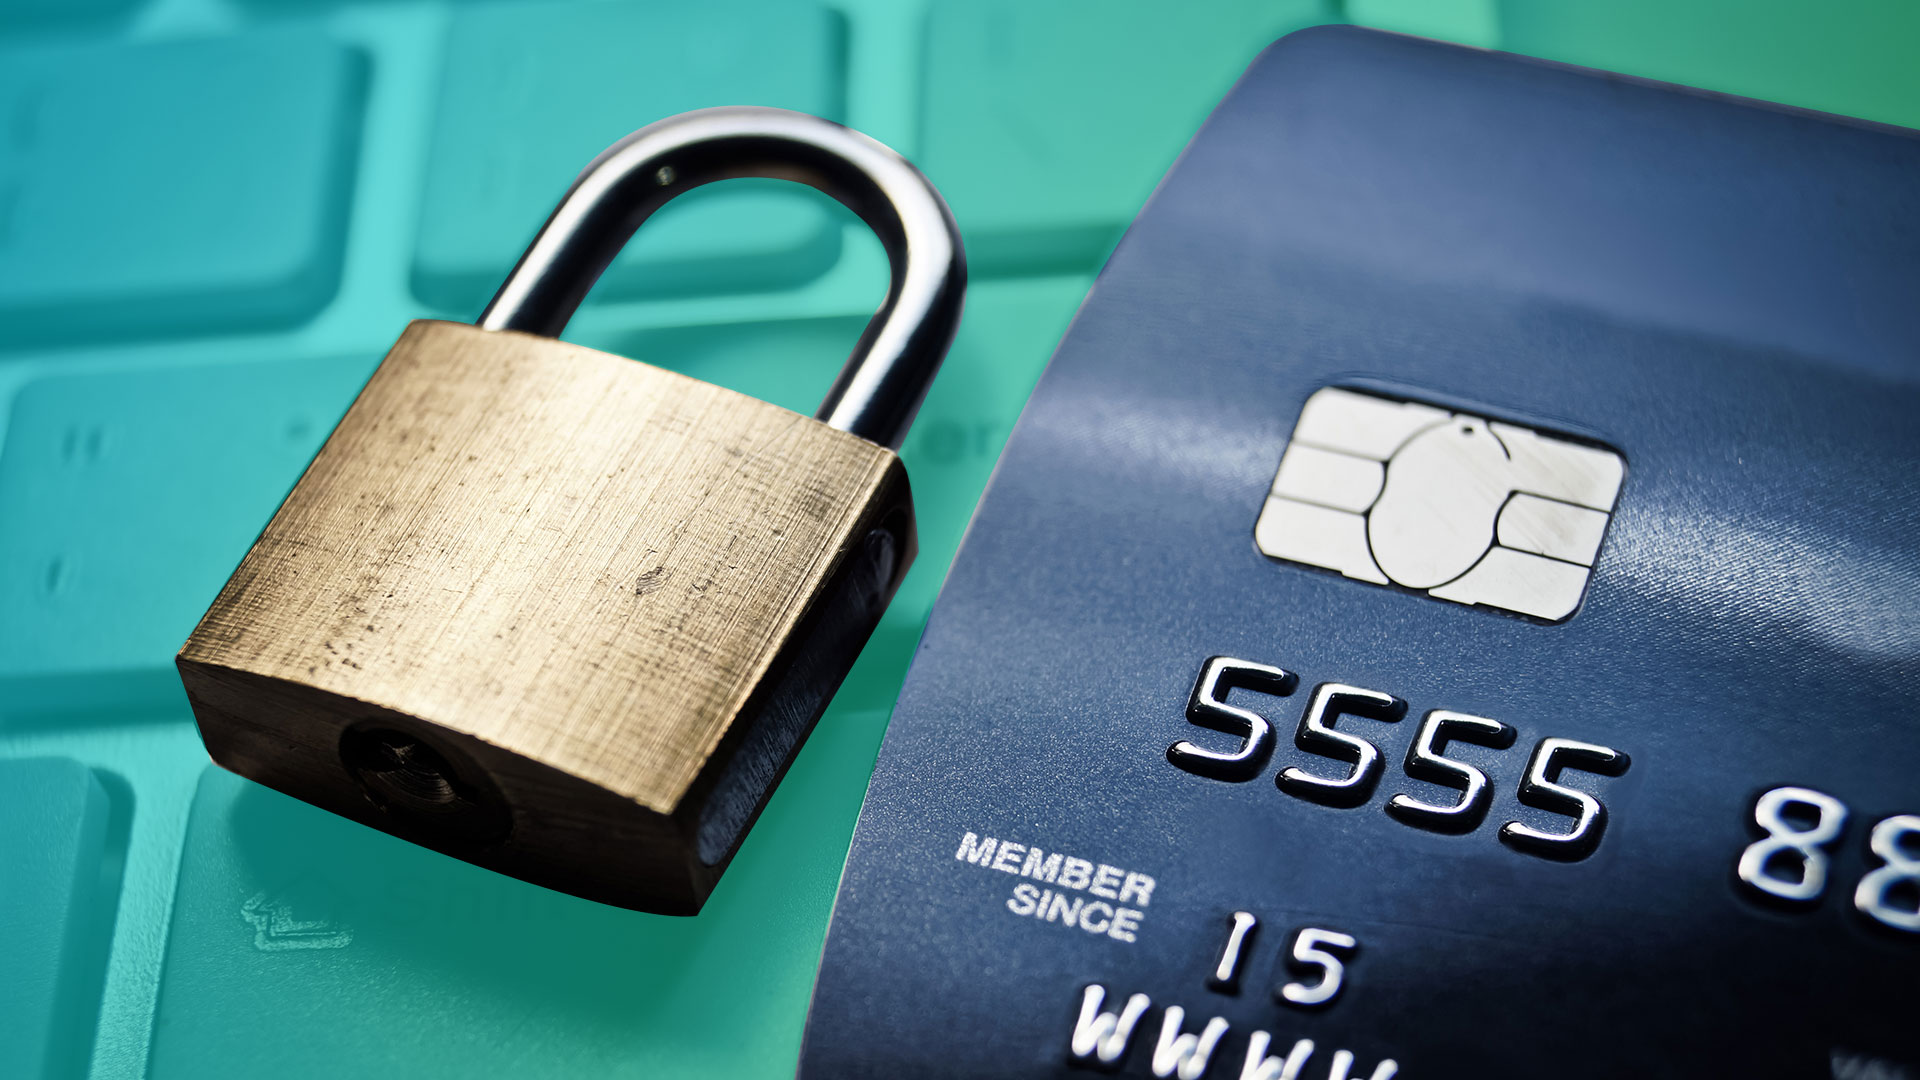 Nasa federal credit union security center - 15 Best Credit Union Credit Cards